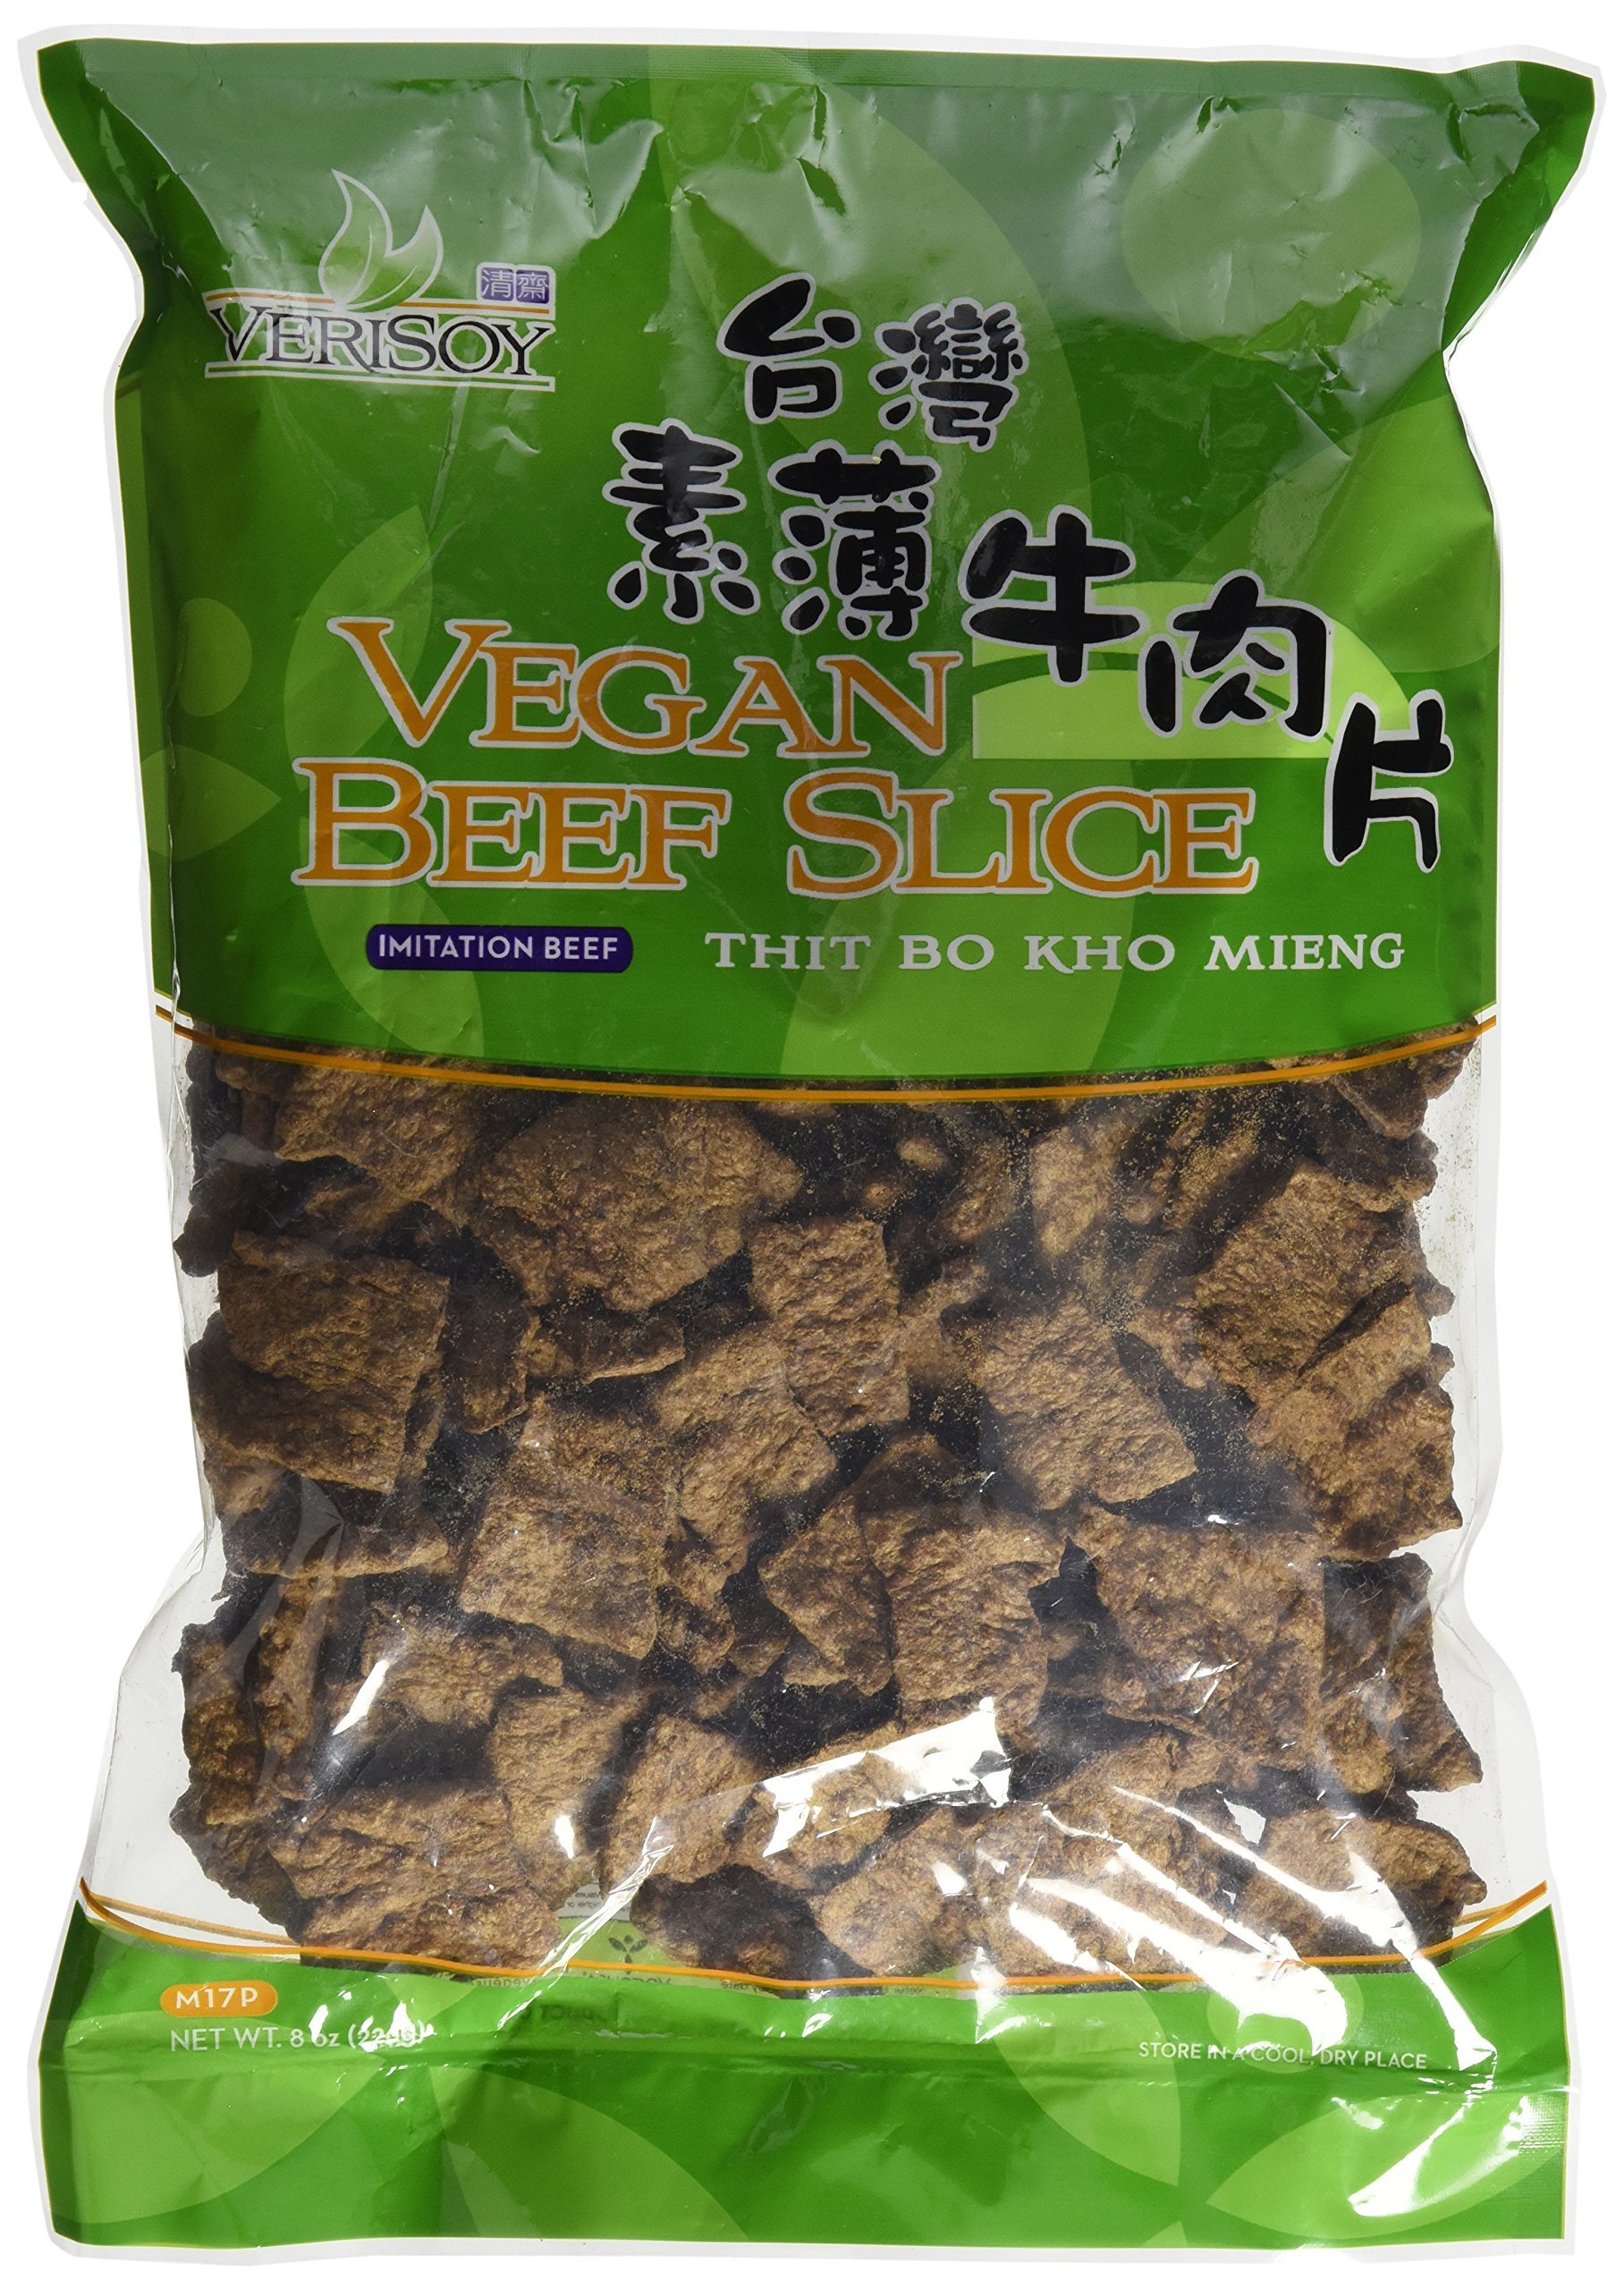 7 oz. Vsoy Meatless, Vegan Soy Textured BEEF SLICE, Soy Protein , Vegetarian Meat Substitute, Unflavored